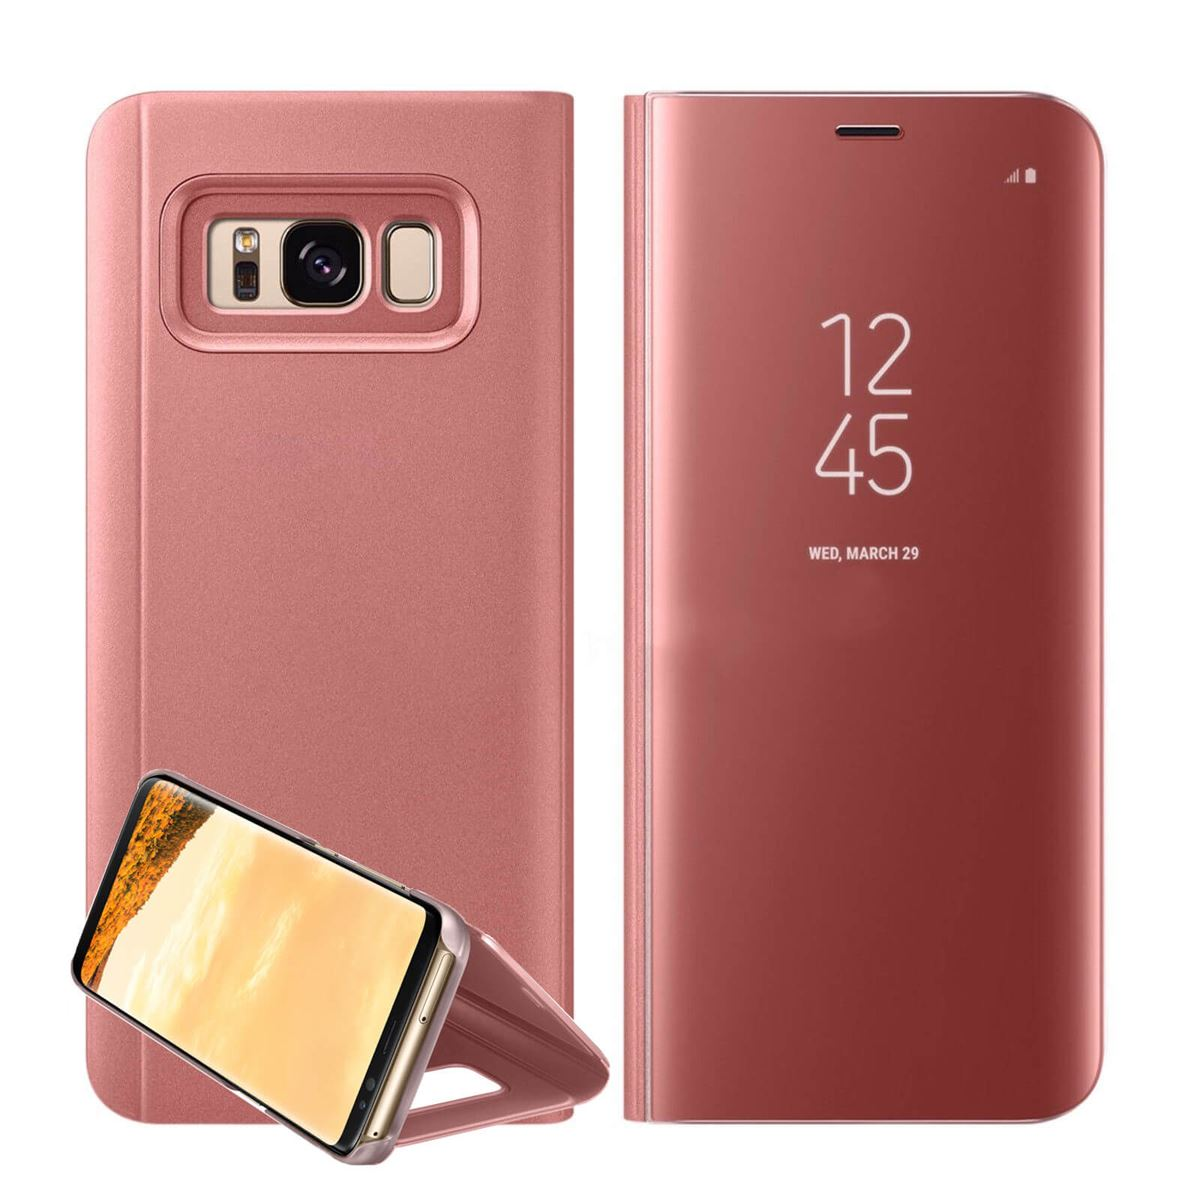 New-Samsung-Galaxy-S10-S9-S8-Smart-View-Mirror-Leather-Flip-Stand-Case-Cover thumbnail 36